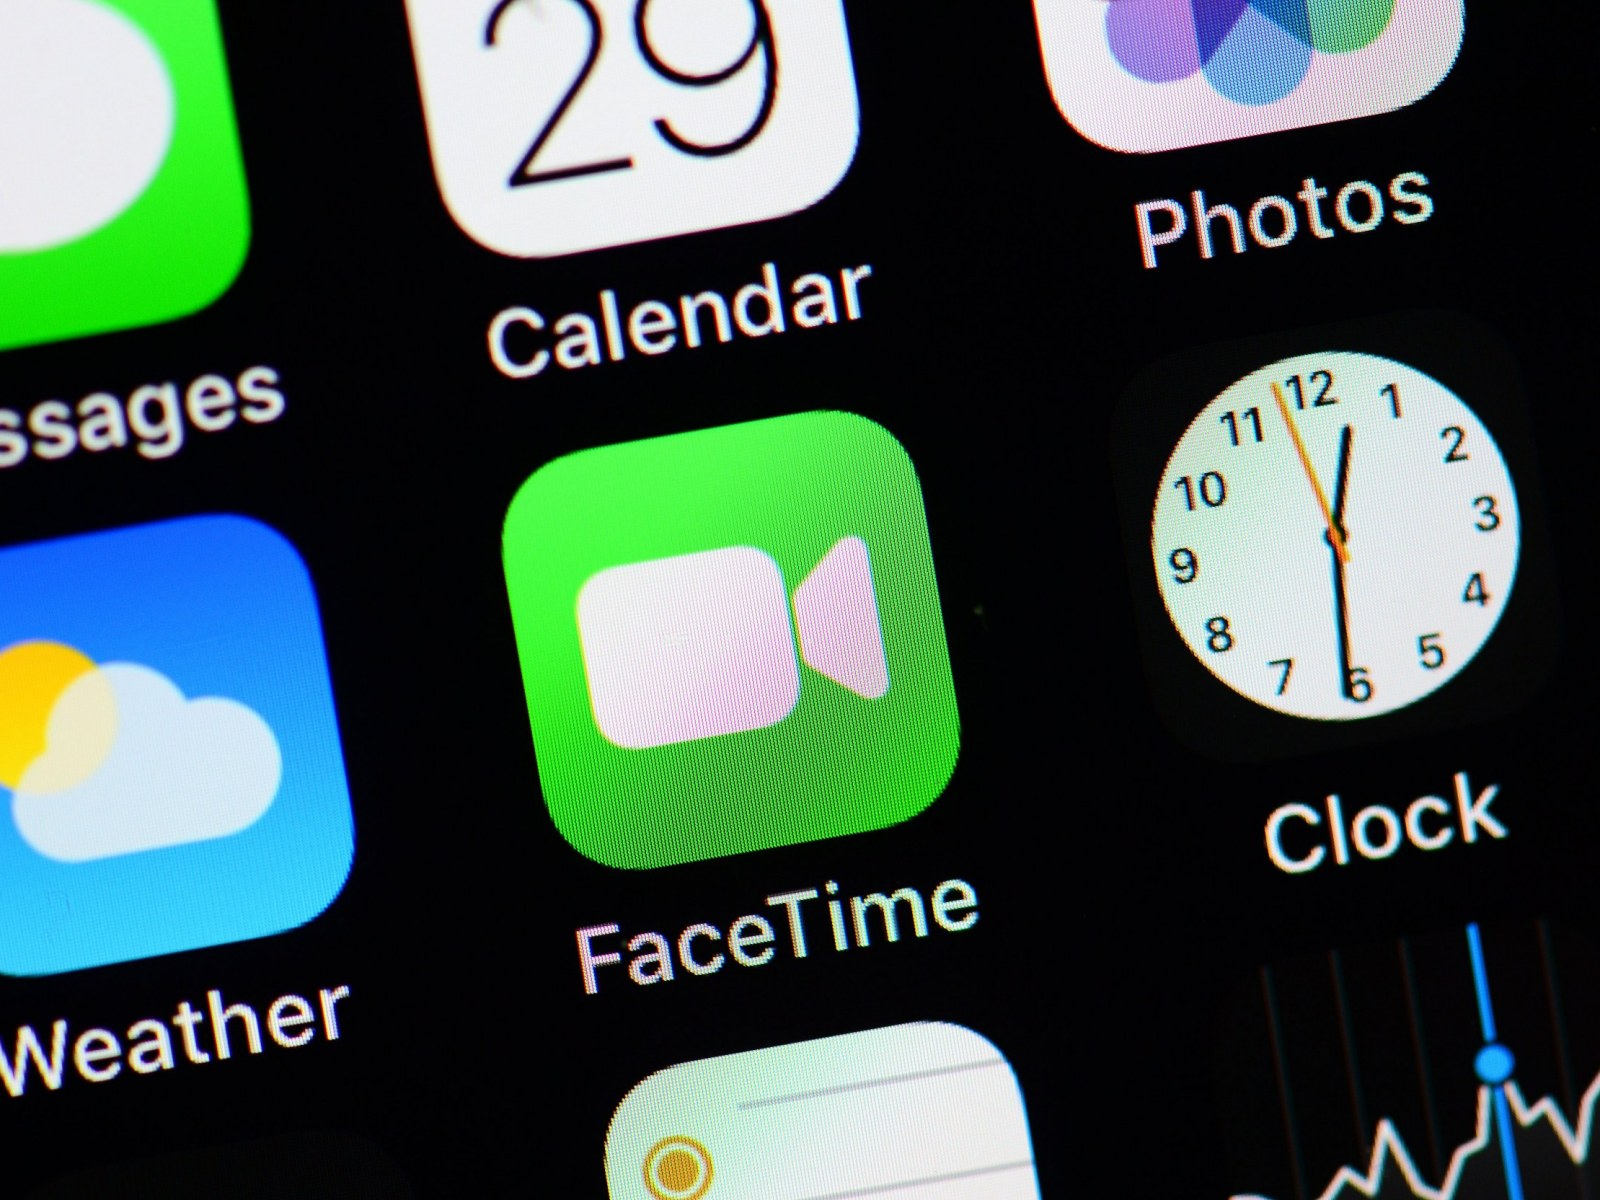 FaceTime Issues: What is the Problem With FaceTime? How to Disable on iPhone, Mac, iPad